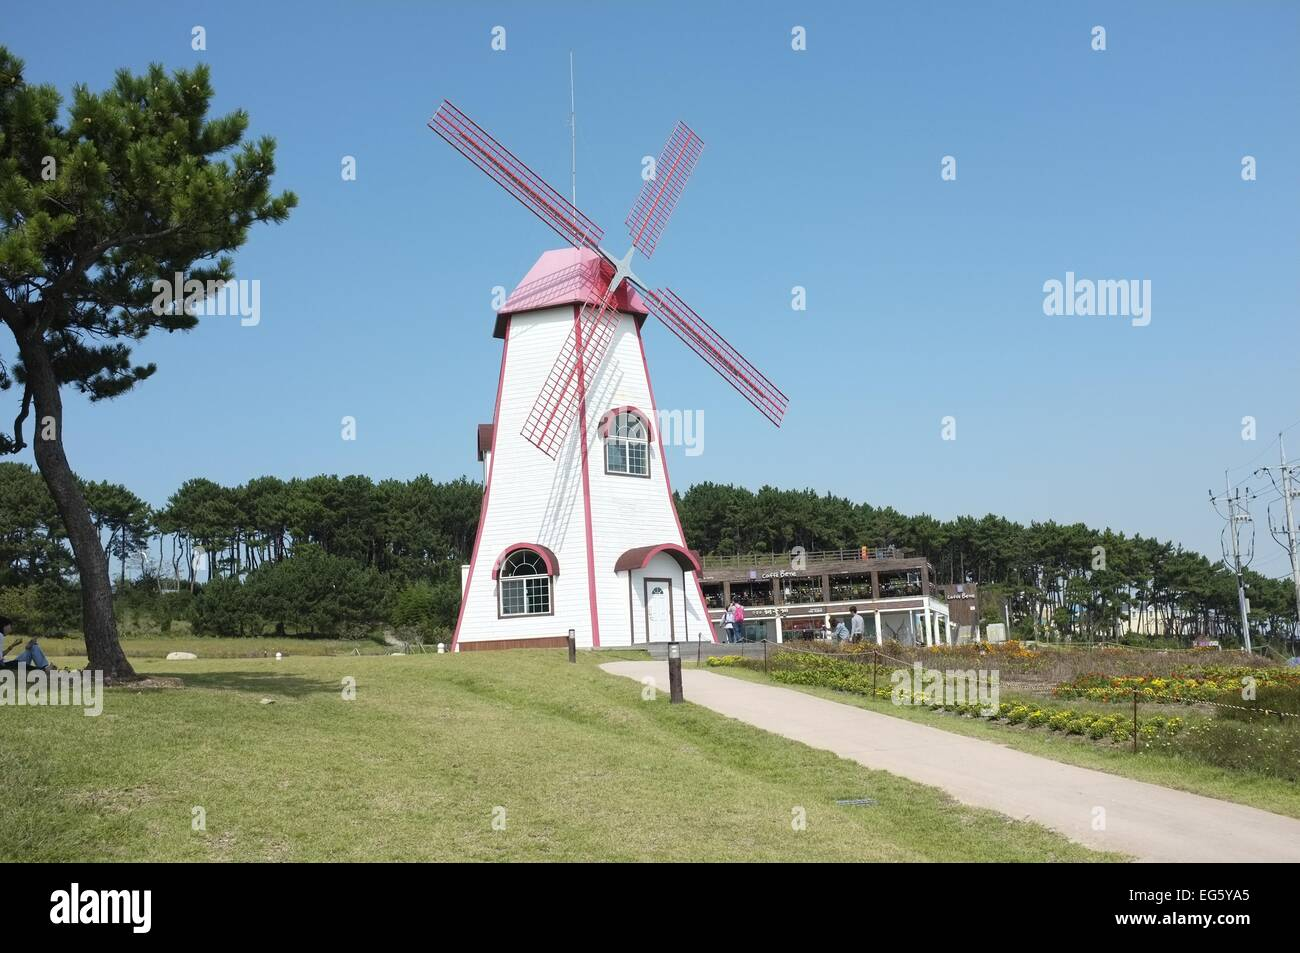 Windmill with tree and blue sky - Stock Image